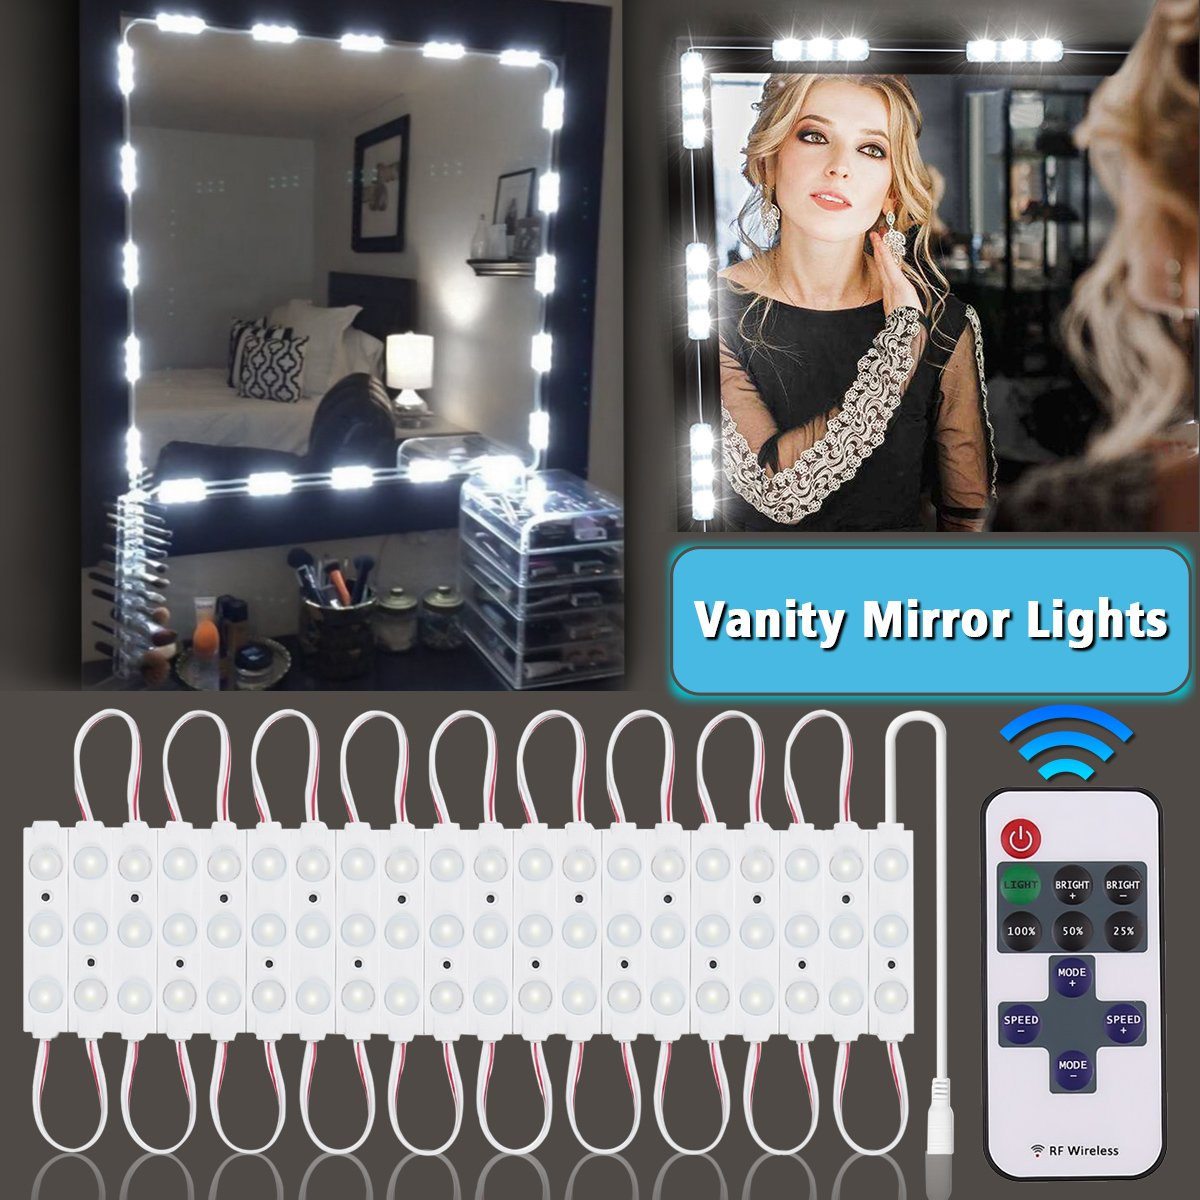 LED Vanity Mirror Lights Kit - Updated, KingSo 2400Lumens Dimmable 13ft 60LED Strip Lights with Remote, Waterproof IP65 Daylight White Hollywood Makeup Dressing Table Vanity Set in Dressing Room